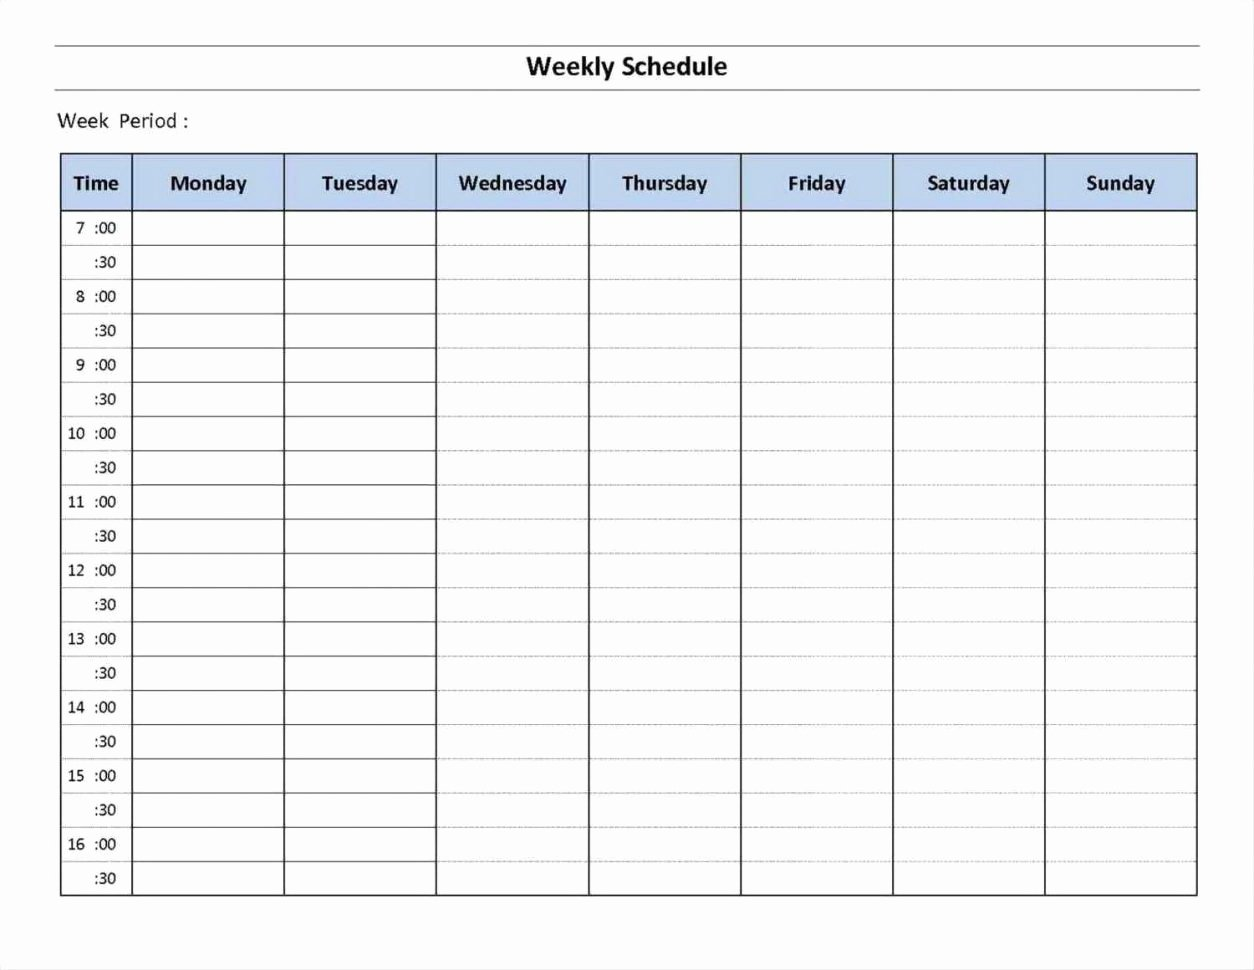 Employee Shift Scheduling Template Awesome Employee Shift Schedule Template Excel Example Of